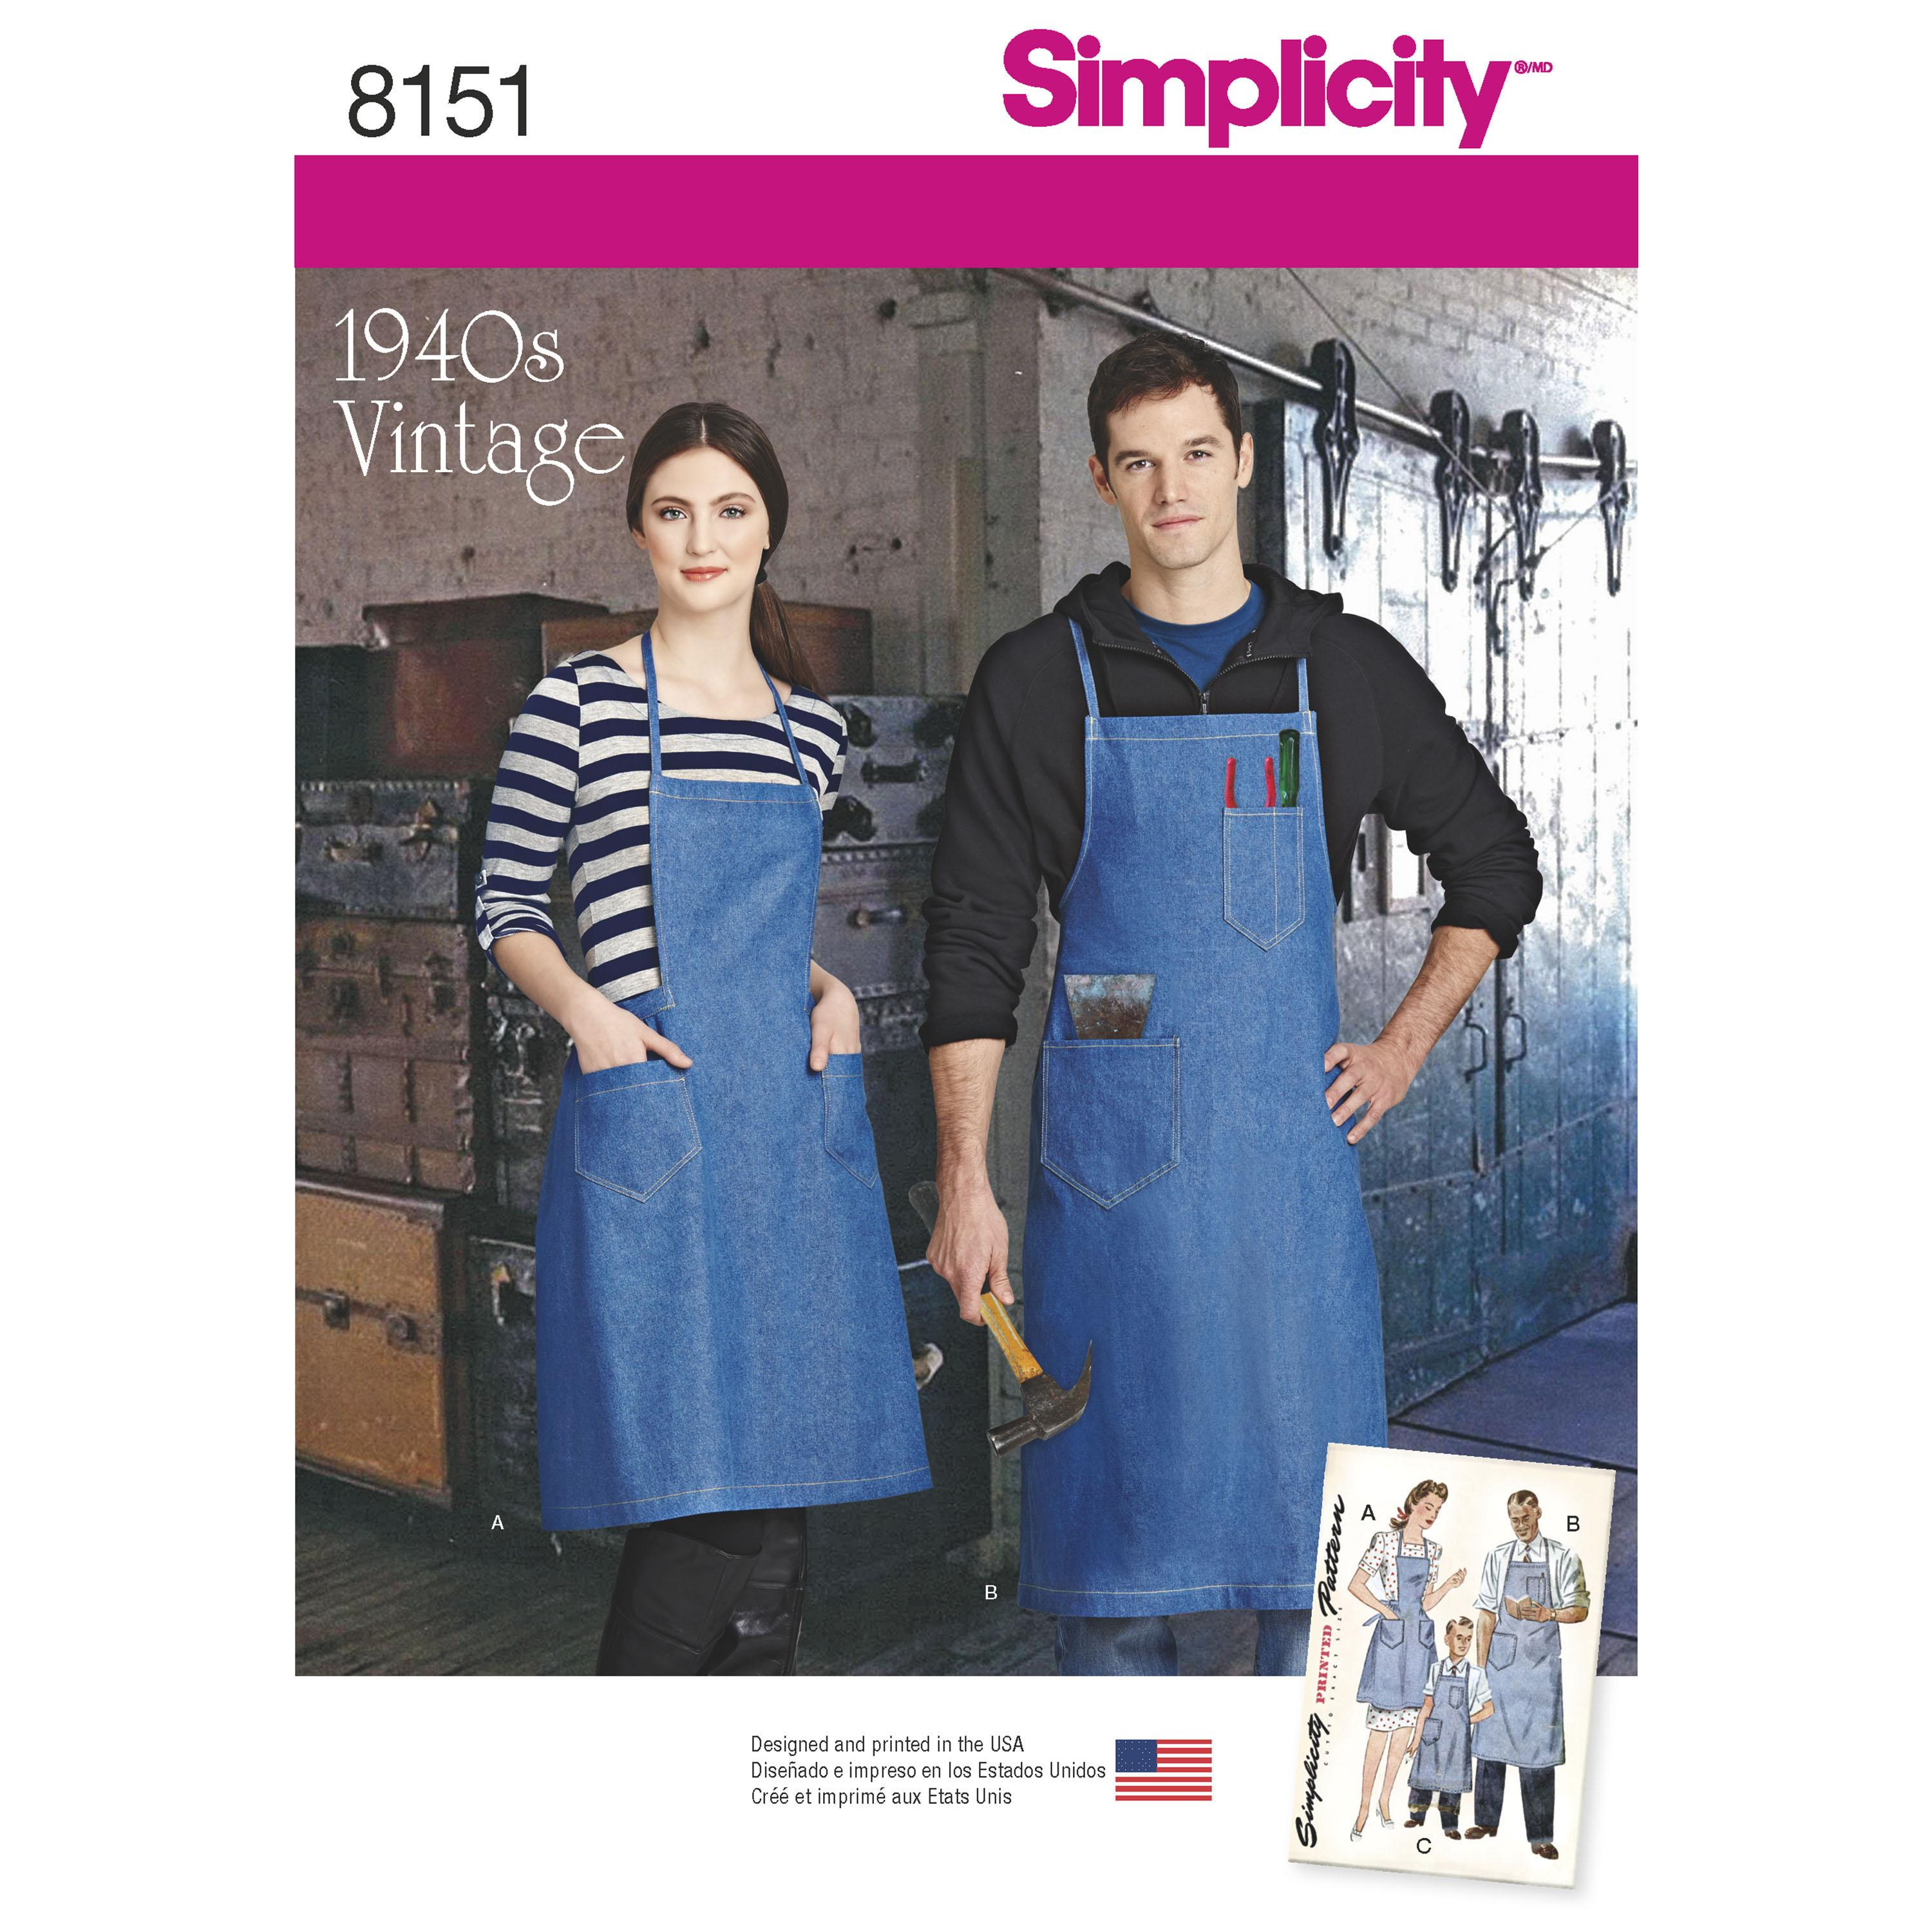 Simplicity S8151 Vintage Aprons for Boys, Girls, Women's and Men